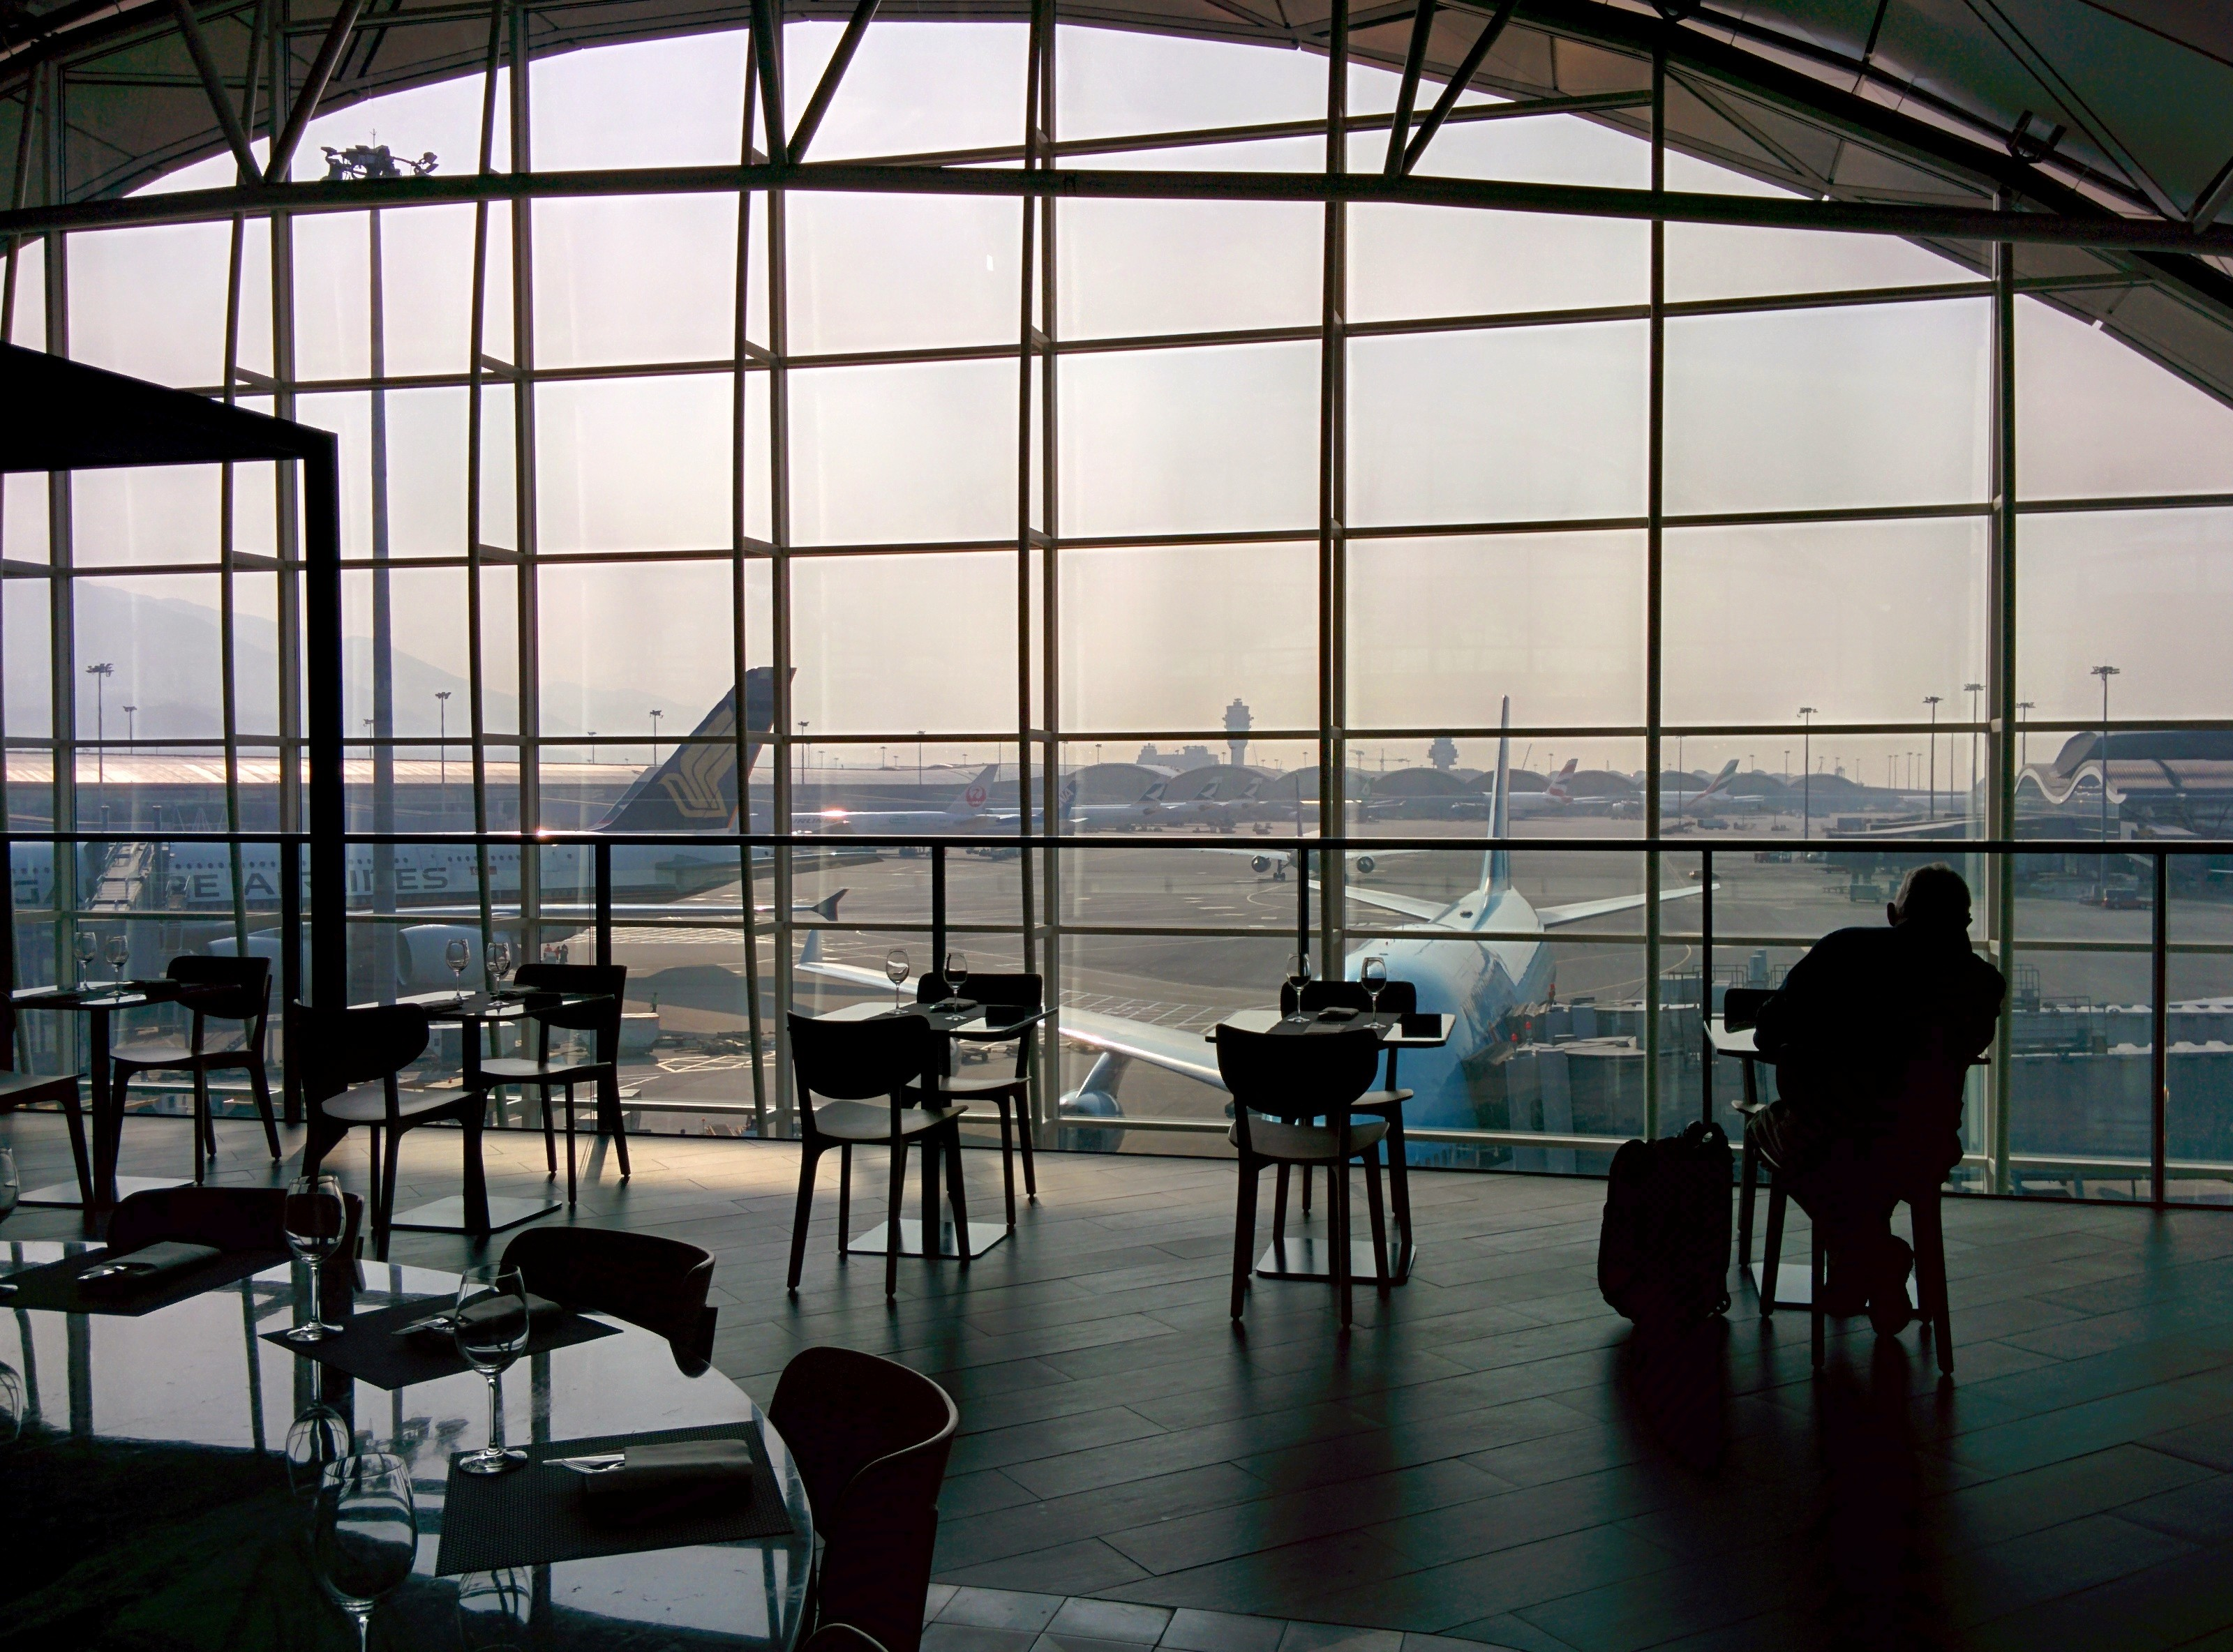 Qantas Lounge at HKG